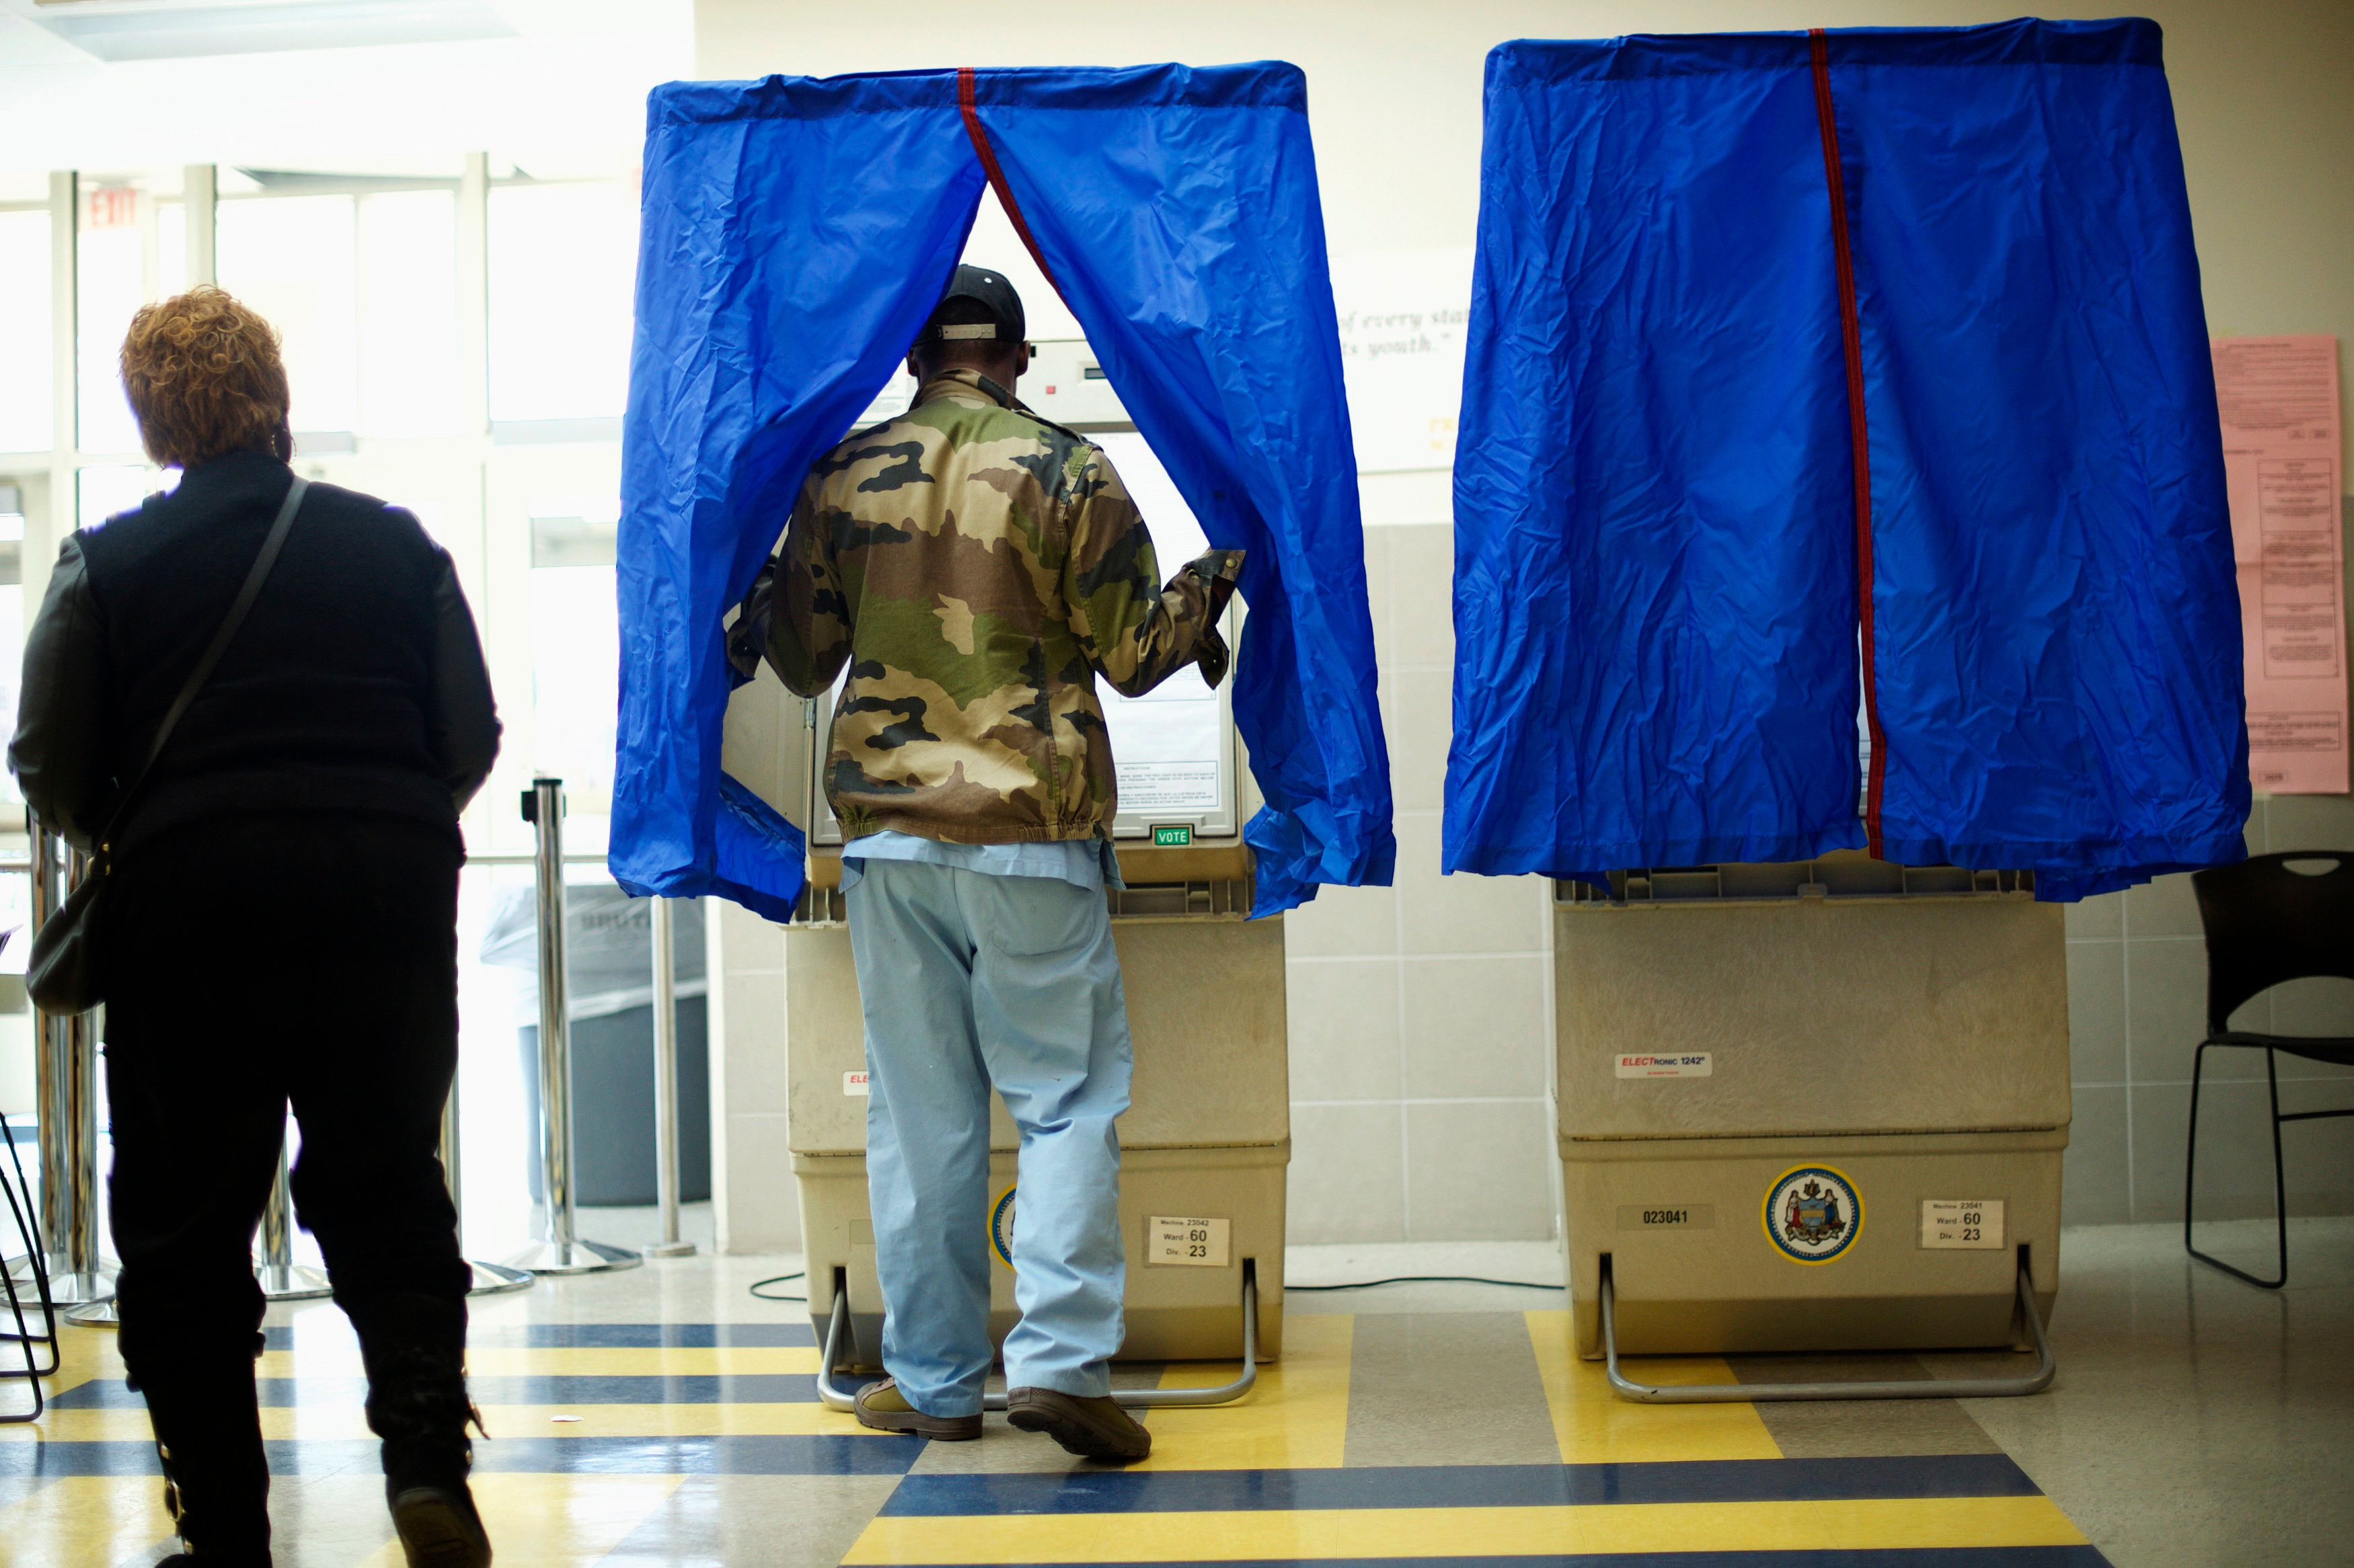 A man enters a voting booth at West Philadelphia High School on U.S. midterm election day morning in Philadelphia, Pennsylvania, November 4, 2014.  REUTERS/Mark Makela (UNITED STATES - Tags: POLITICS ELECTIONS)